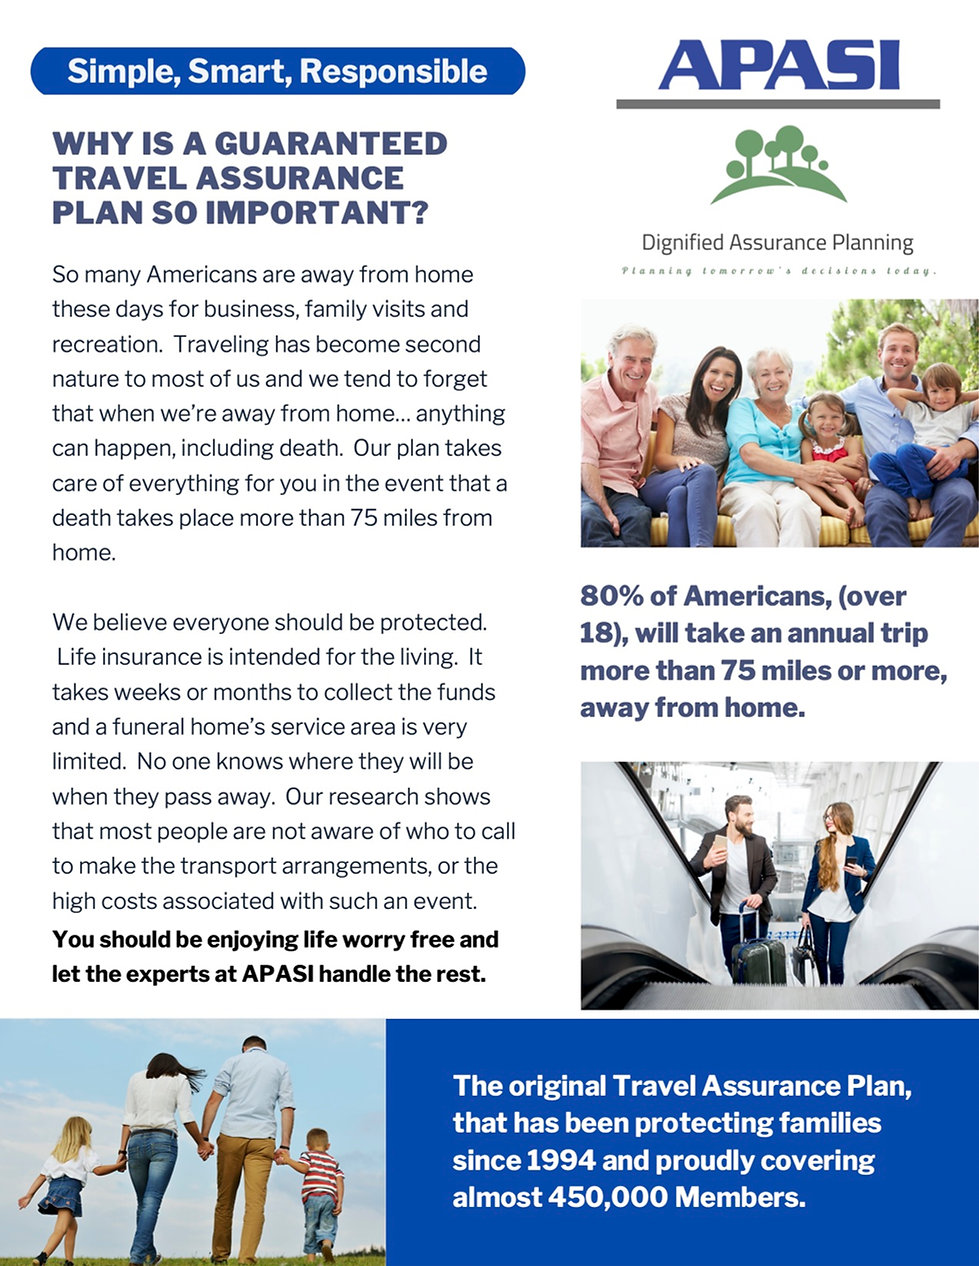 Dignified Assurance Planning FH flyer at